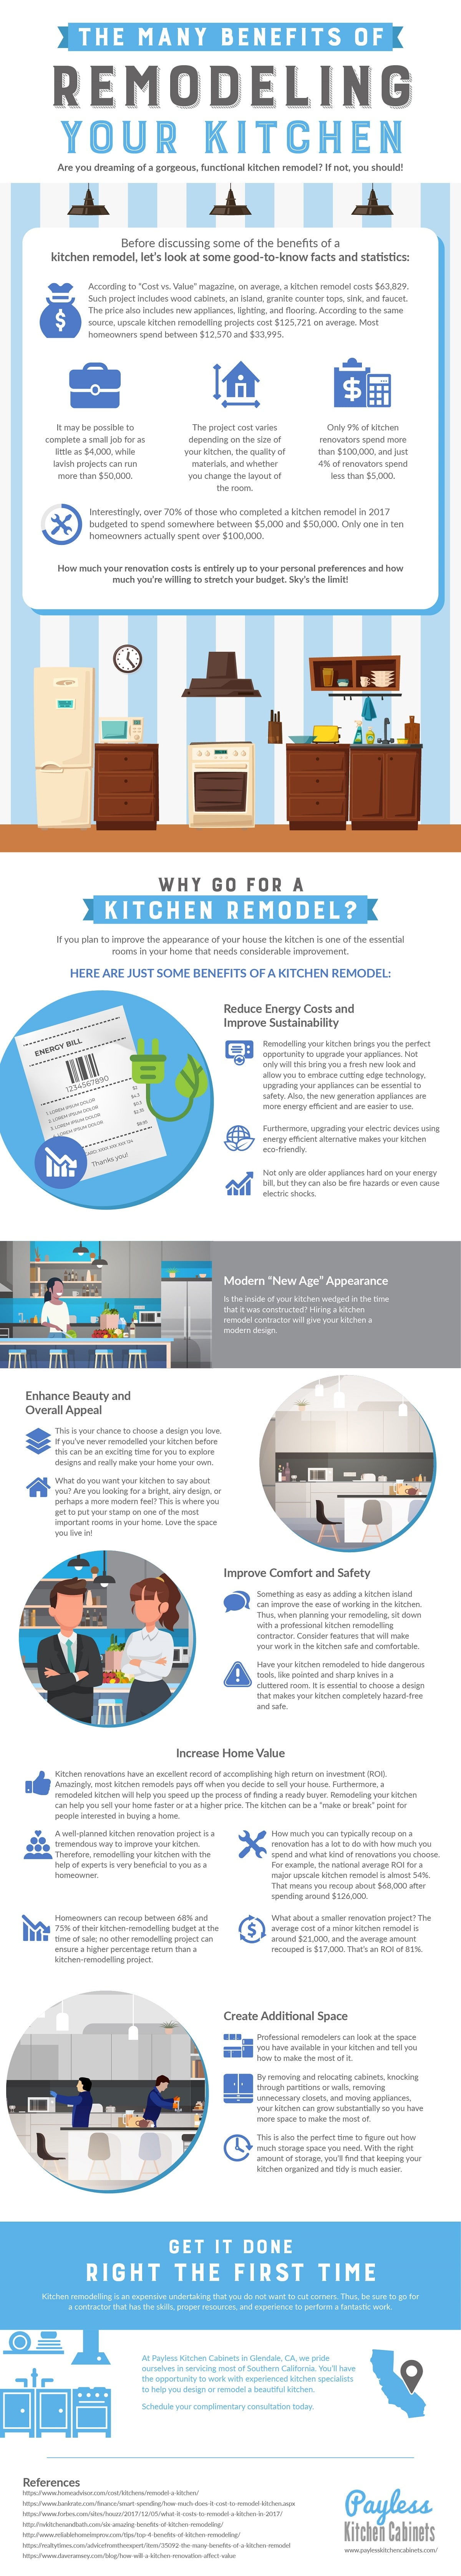 The many benefits of a kitchen remodel - Infographic by Payless Kitchen Cabinets